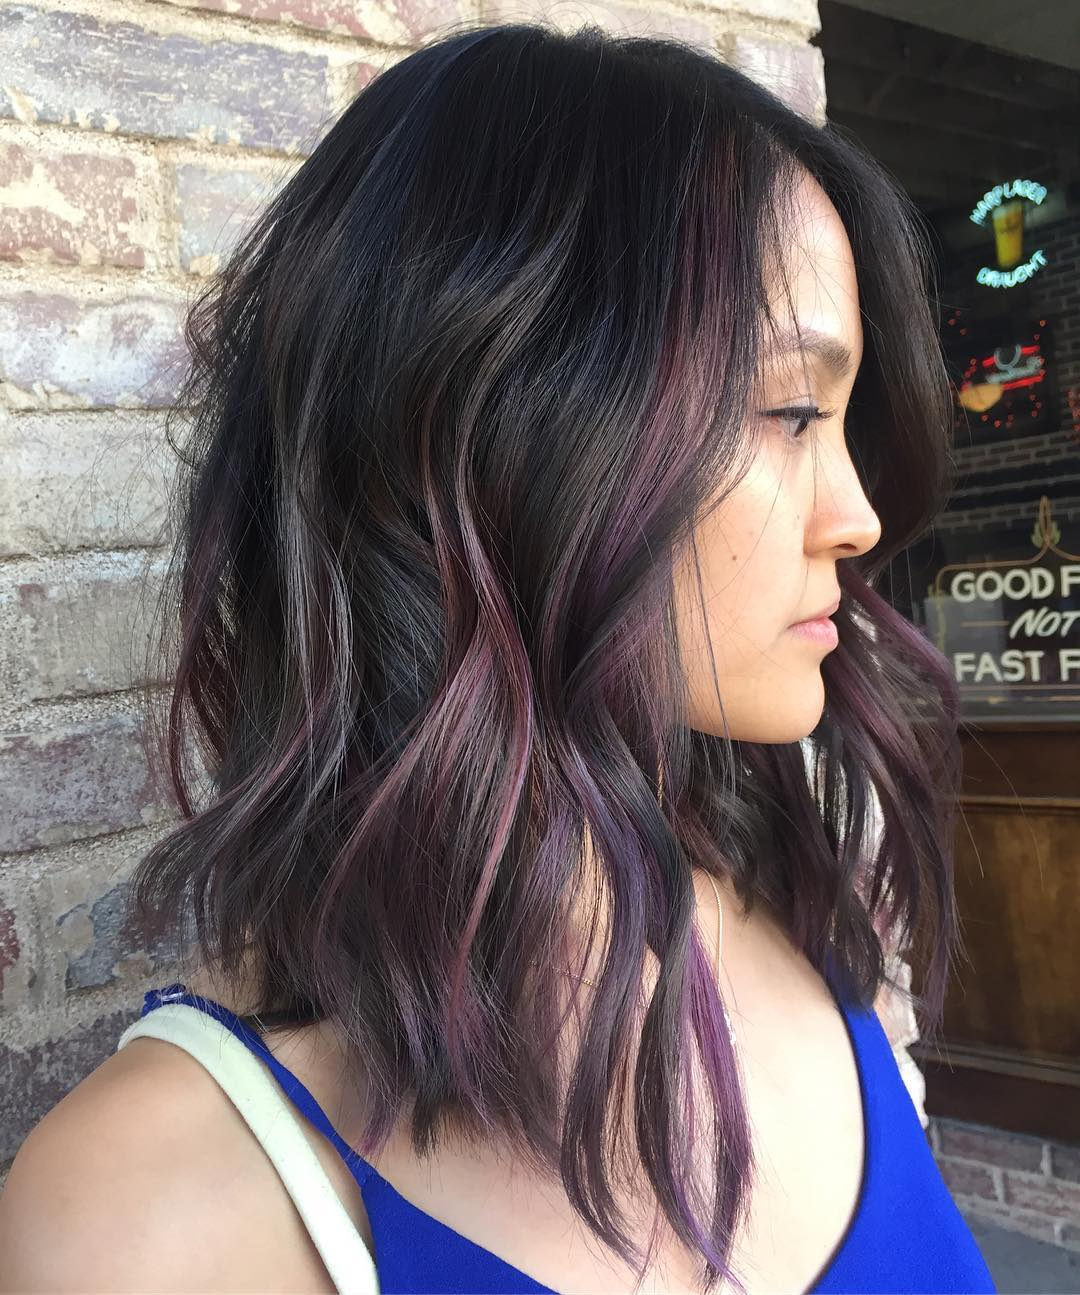 Highlights pictures hair Asian